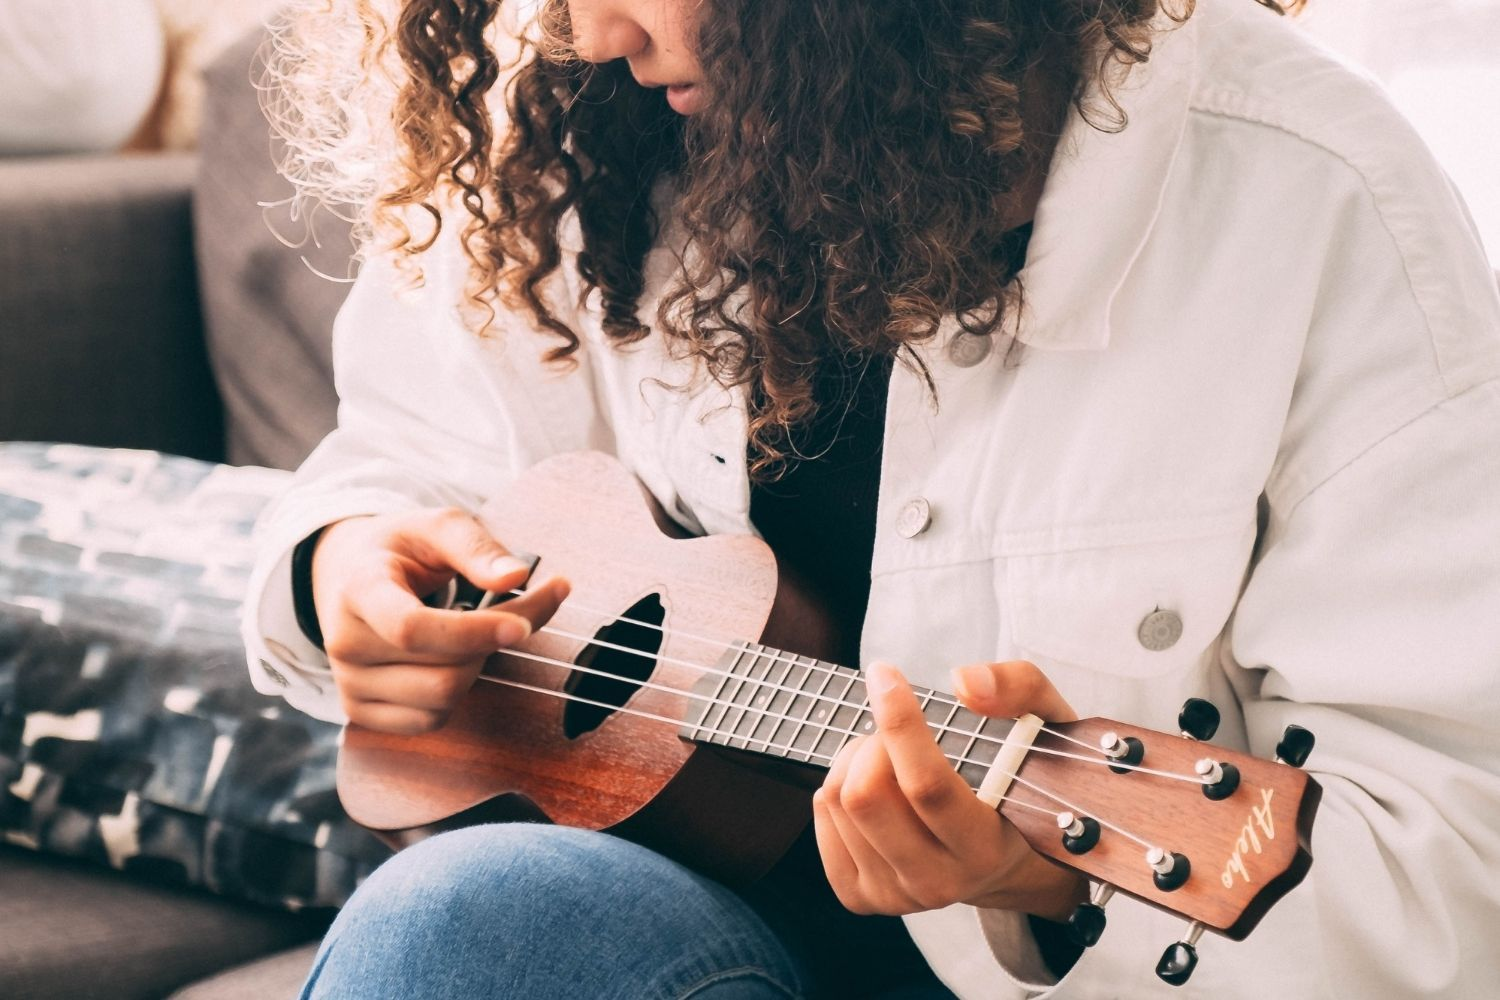 How to Play Ukulele in Easy Online Lessons